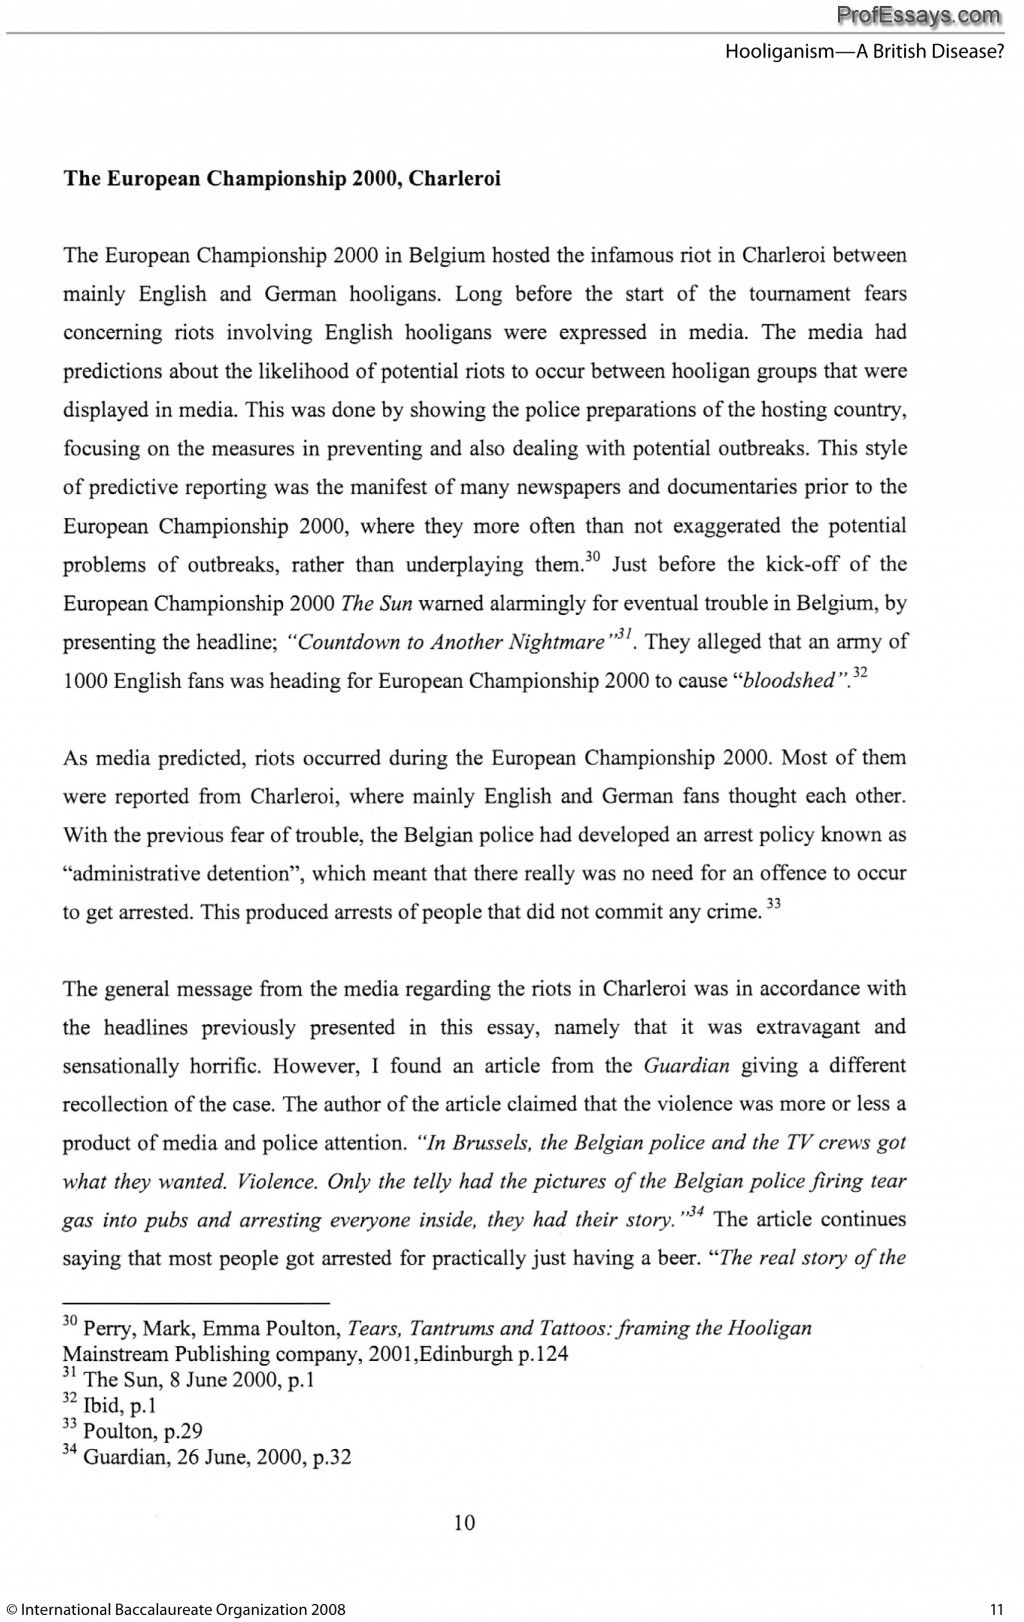 004 Essay Example Online Essays Ib Extended Free Amazing For Sale Proofreading Sell Uk Large